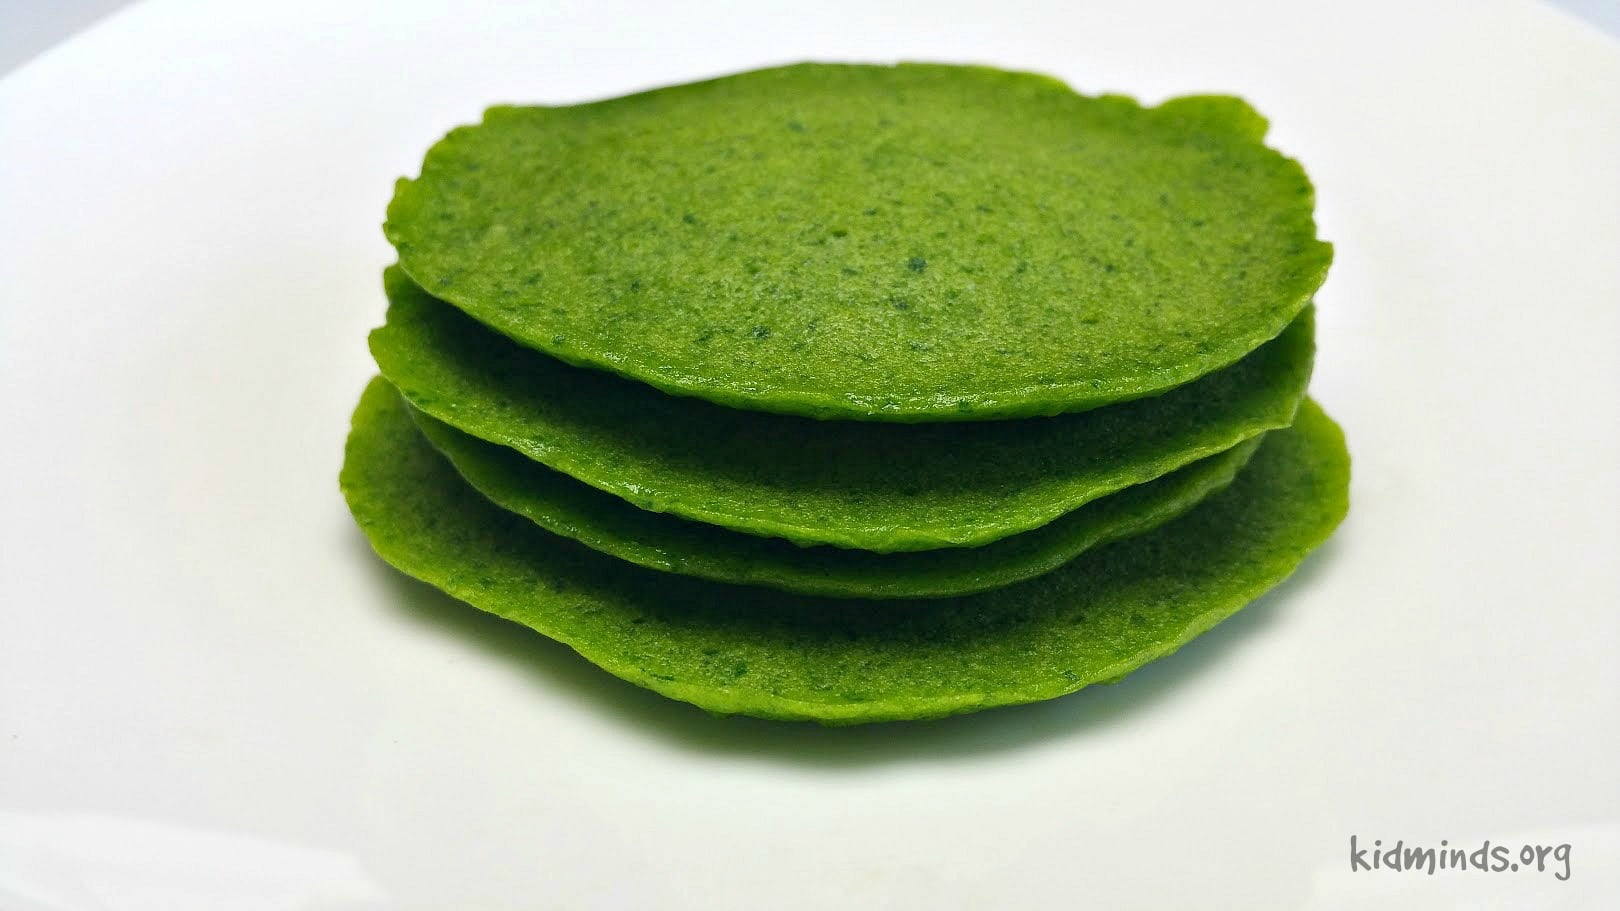 Green pancakes without artificial Colorings.  The rich, green color comes from fresh, nutritious spinach!